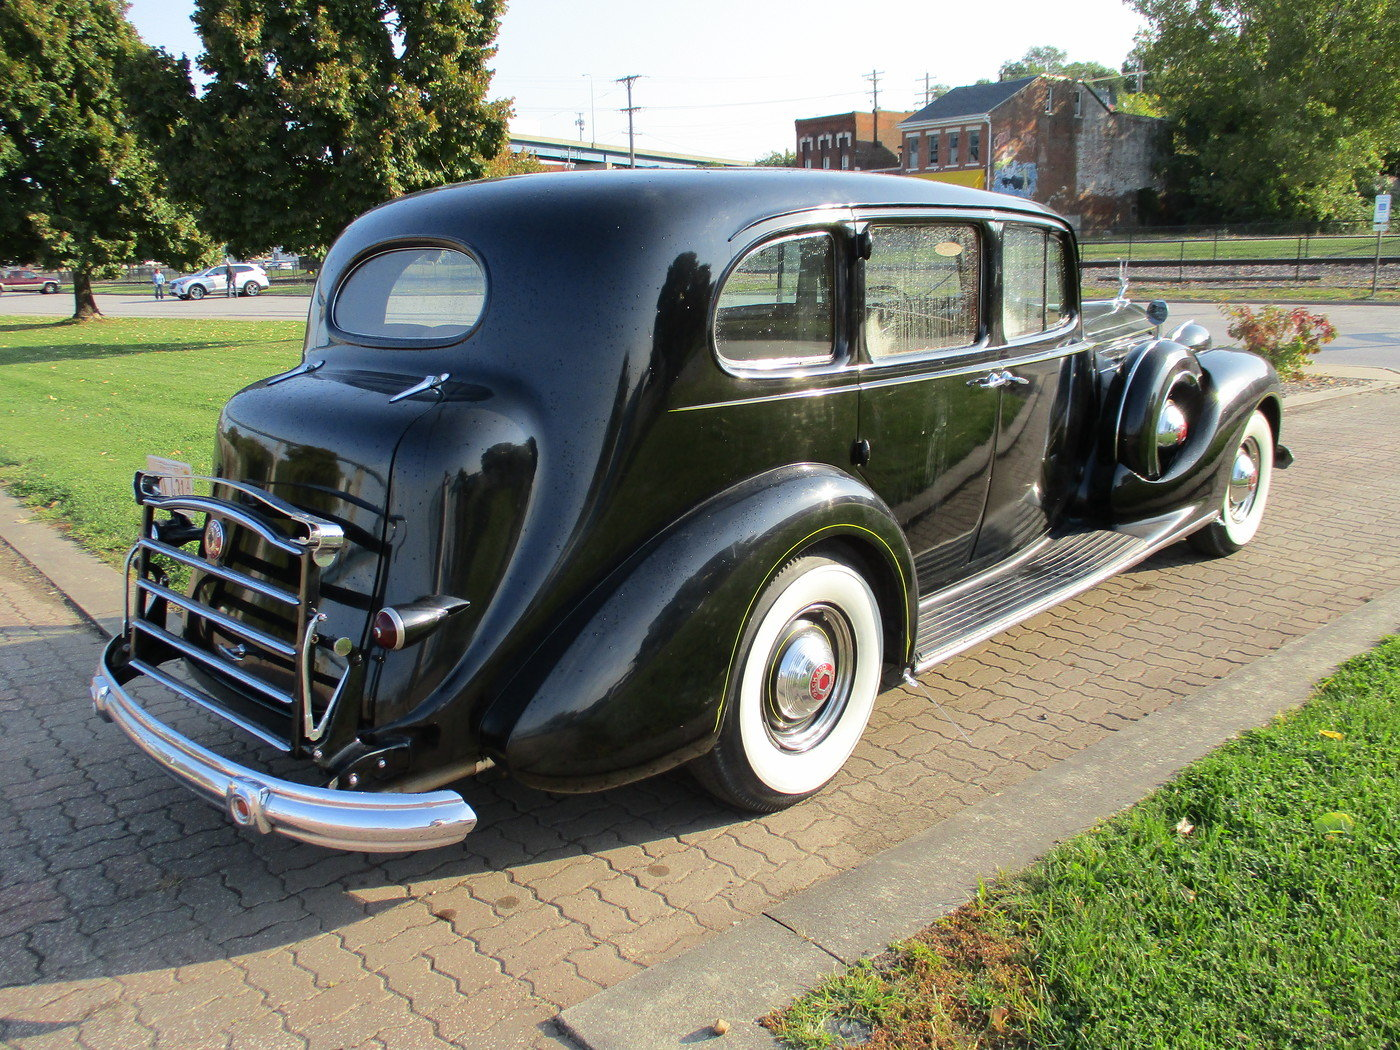 1939 Packard Model 1708 12 Cylinder Limousine For Sale (picture 12 of 12)